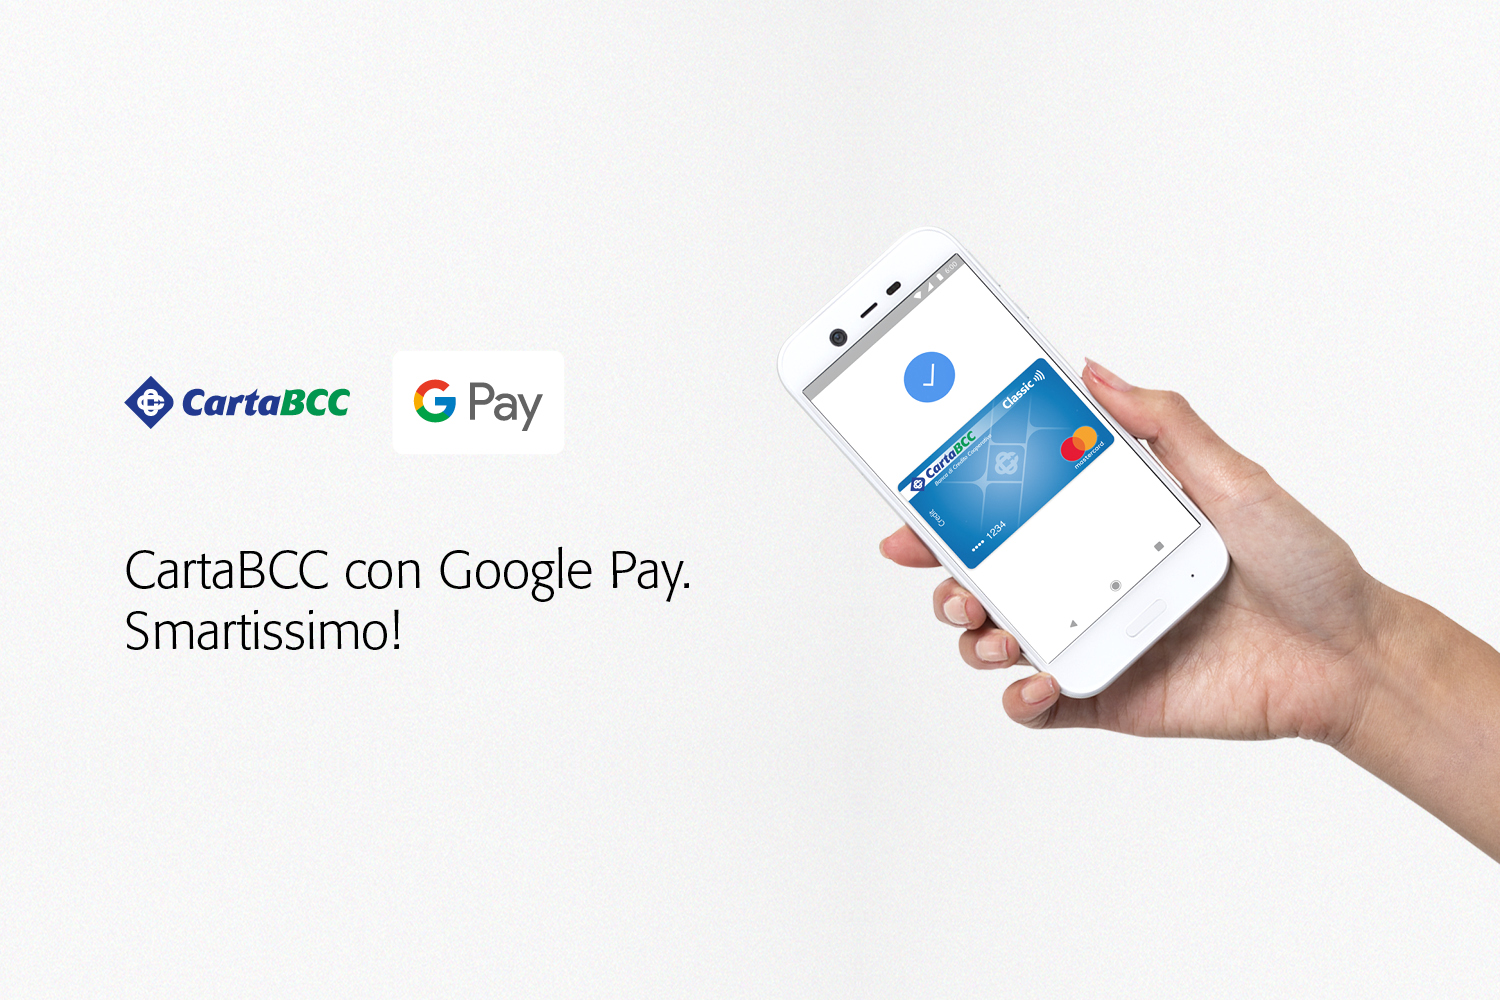 CartaBCC con Google Pay. Smartissimo!